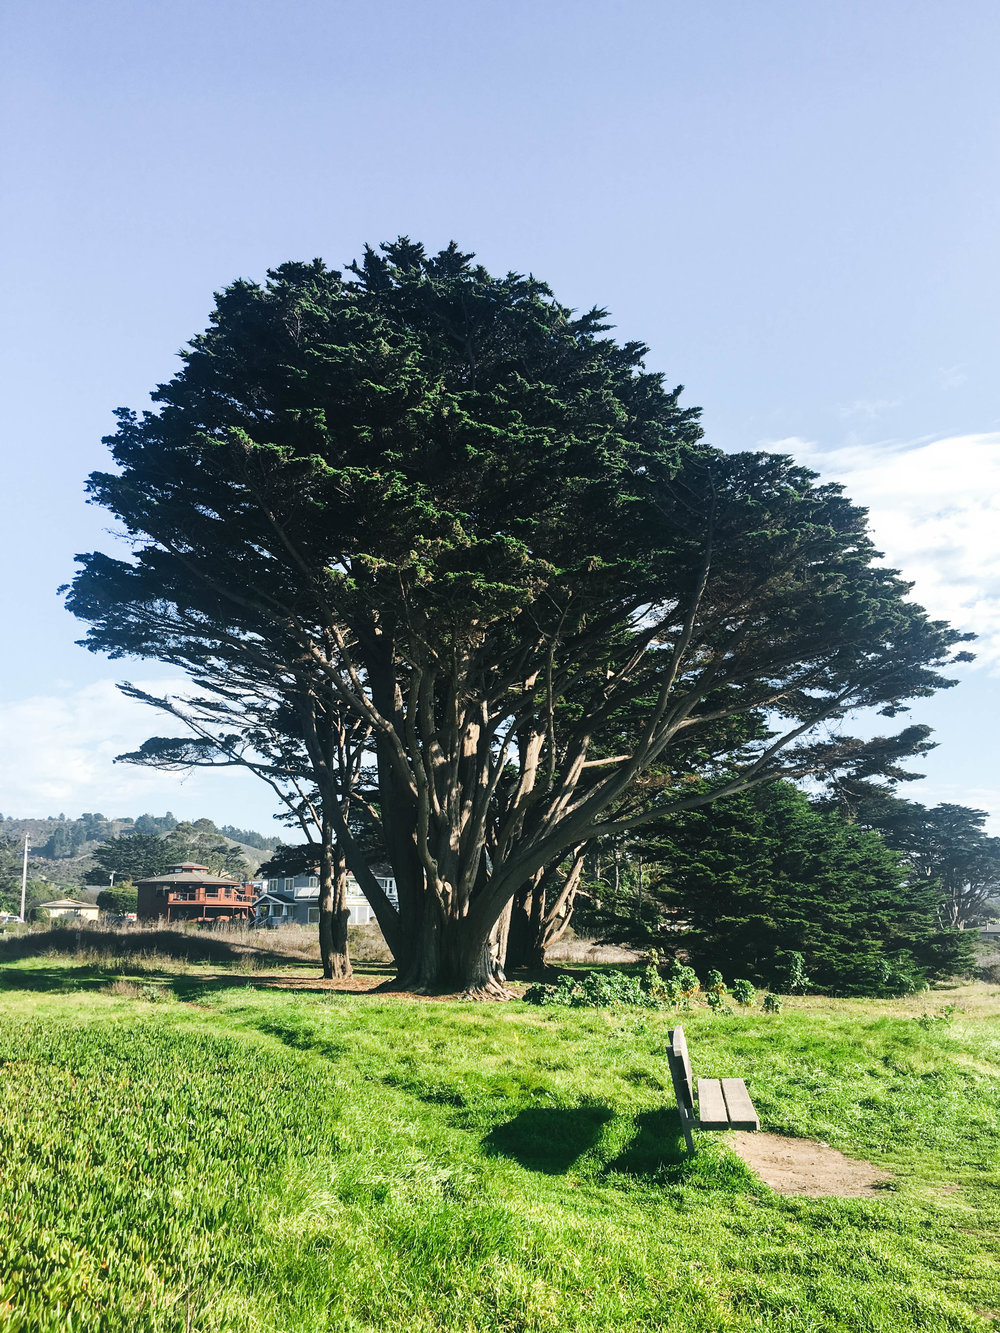 "<p style=""font-family:brandon-grotesque;font-weight:500; font-size:11px; text-center:left; color:light grey;letter-spacing: 1px"">OCTOBER 22, 2017 • PICNIC • 📍 Santa Cruz, CA</p>"